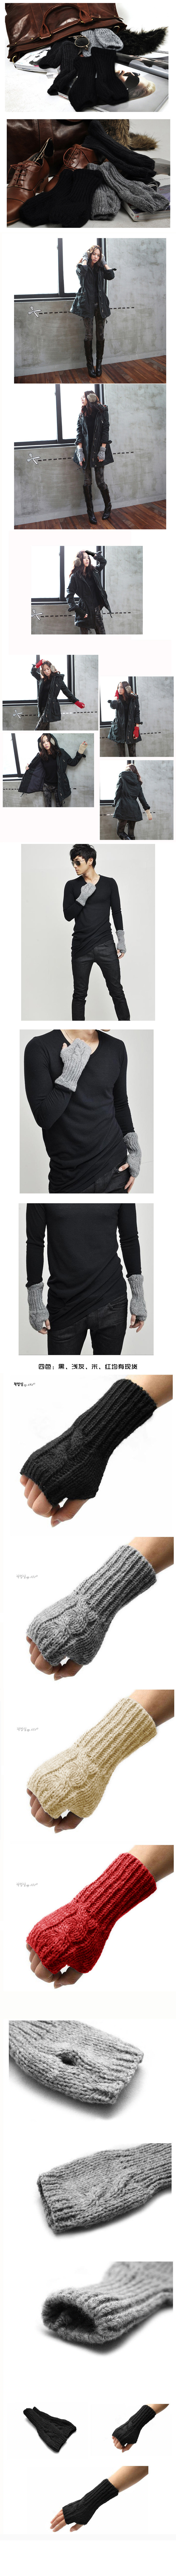 Trend for Fall $12.95 Unisex Knit Gloves .. gonna look for non fuzzy, itchy, puffy ones